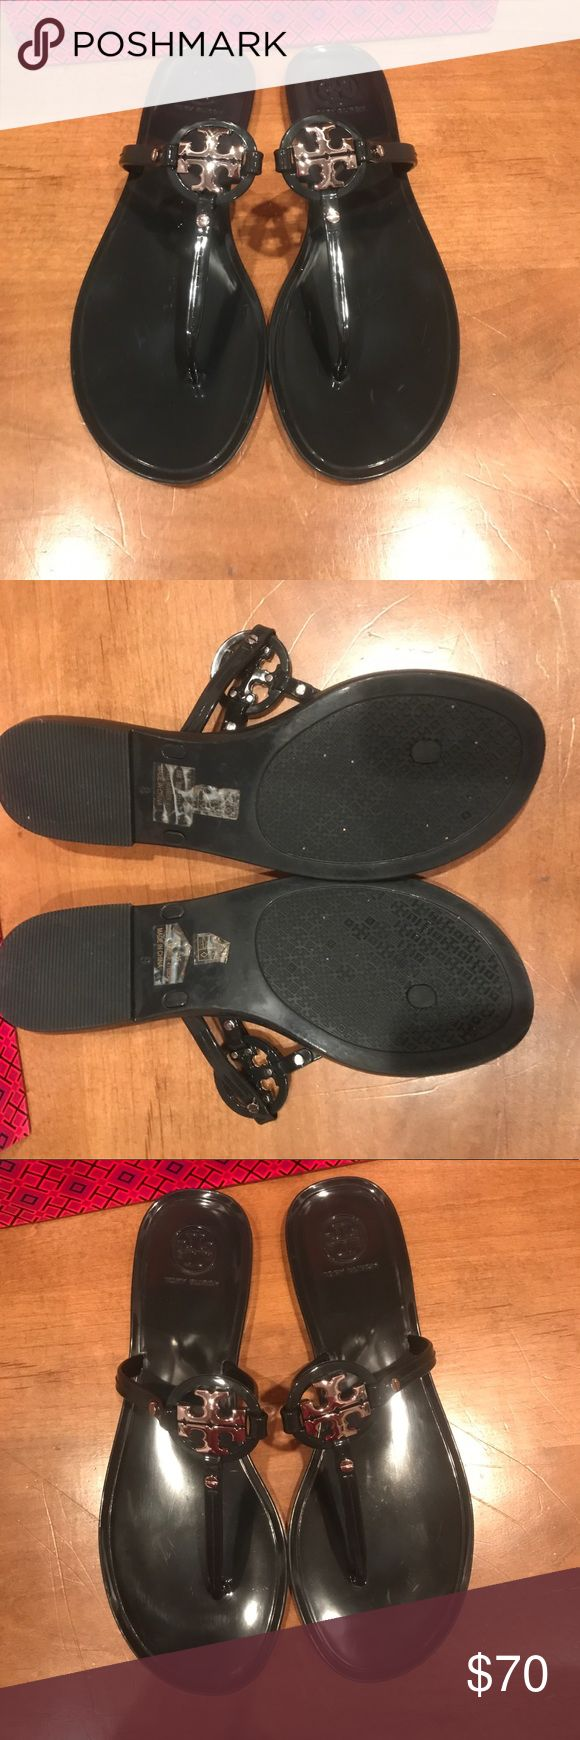 Tory Burch Mini Miller Flat Sandal These shoes are Navy Blue and we're purchased at Tory Burch however I don't have the original box but could send Tory Burch gift packaging if buyer would like. I  have only worn these 3 times, they are in excellent condition and the only reason I am getting rid of them is they hurt my feet. Tory Burch Shoes Sandals